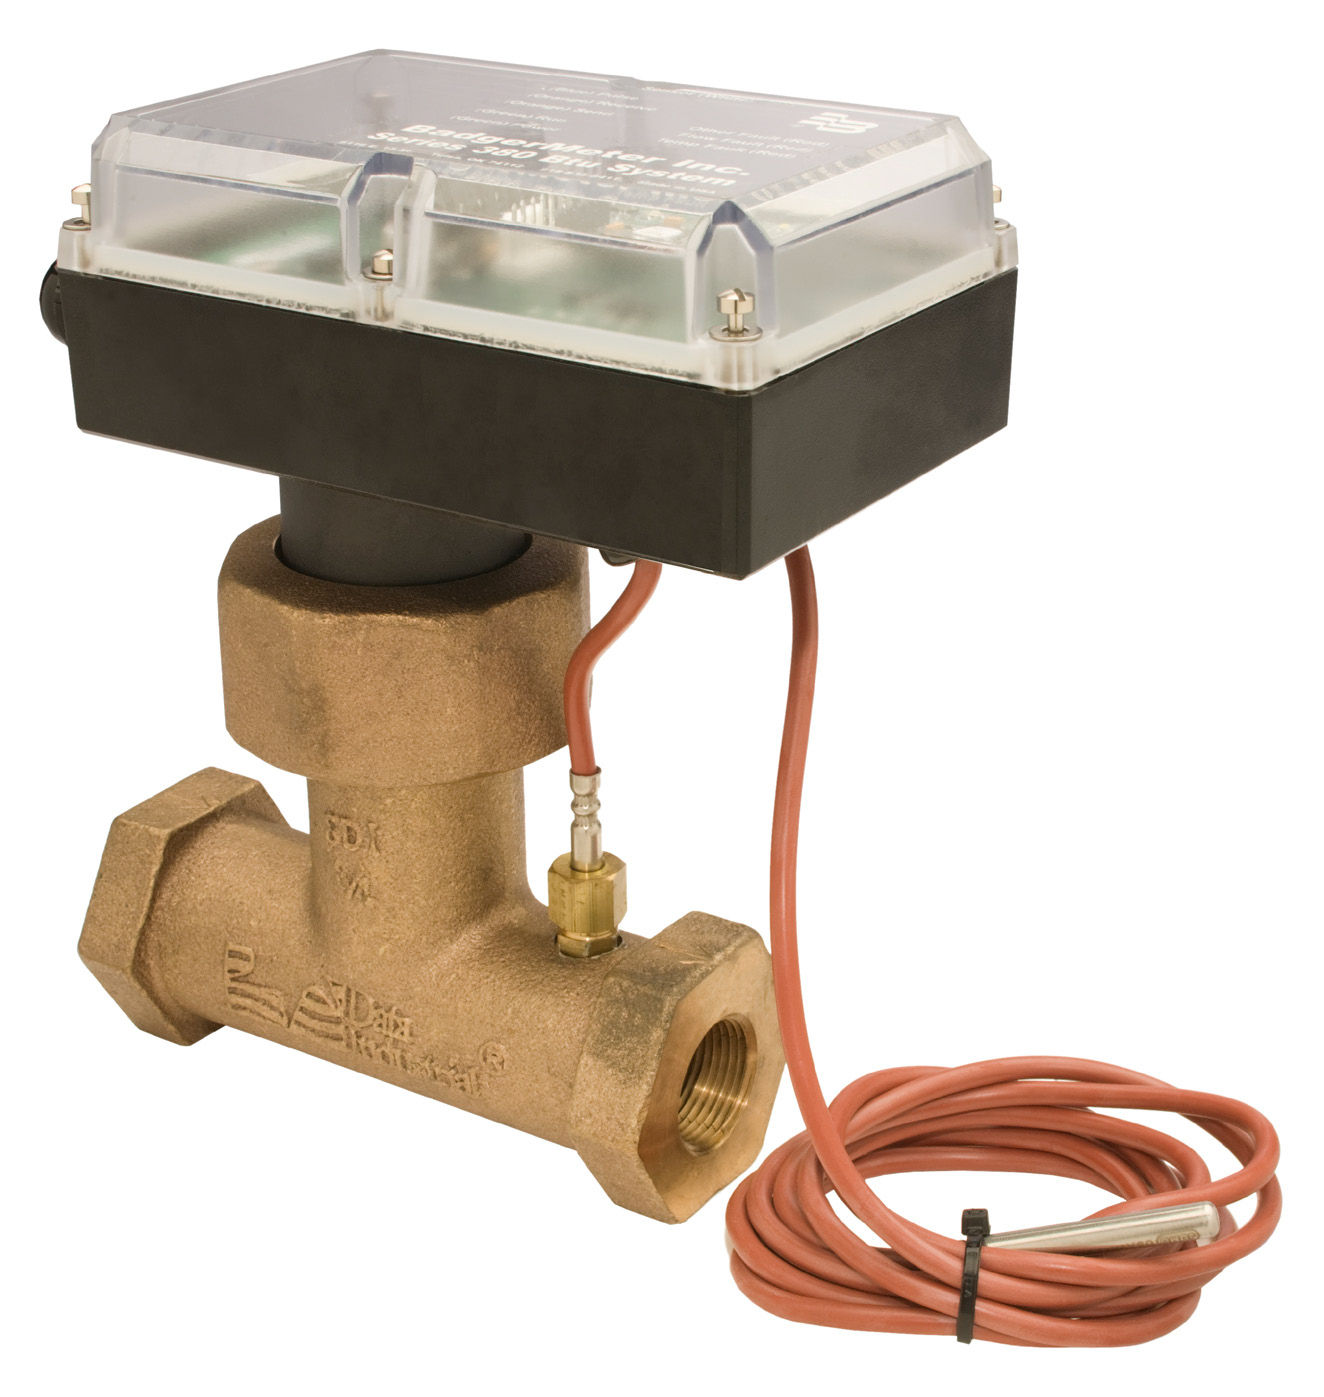 Impeller flow sensor / thermal / gas / for liquids - 380 Btu Meter on home water meter installation diagrams, meter service diagrams, acme transformers electrical connection diagrams, meter socket wiring, meter form diagrams, 12s meter diagrams, meter socket diagram, house electrical meter diagrams,